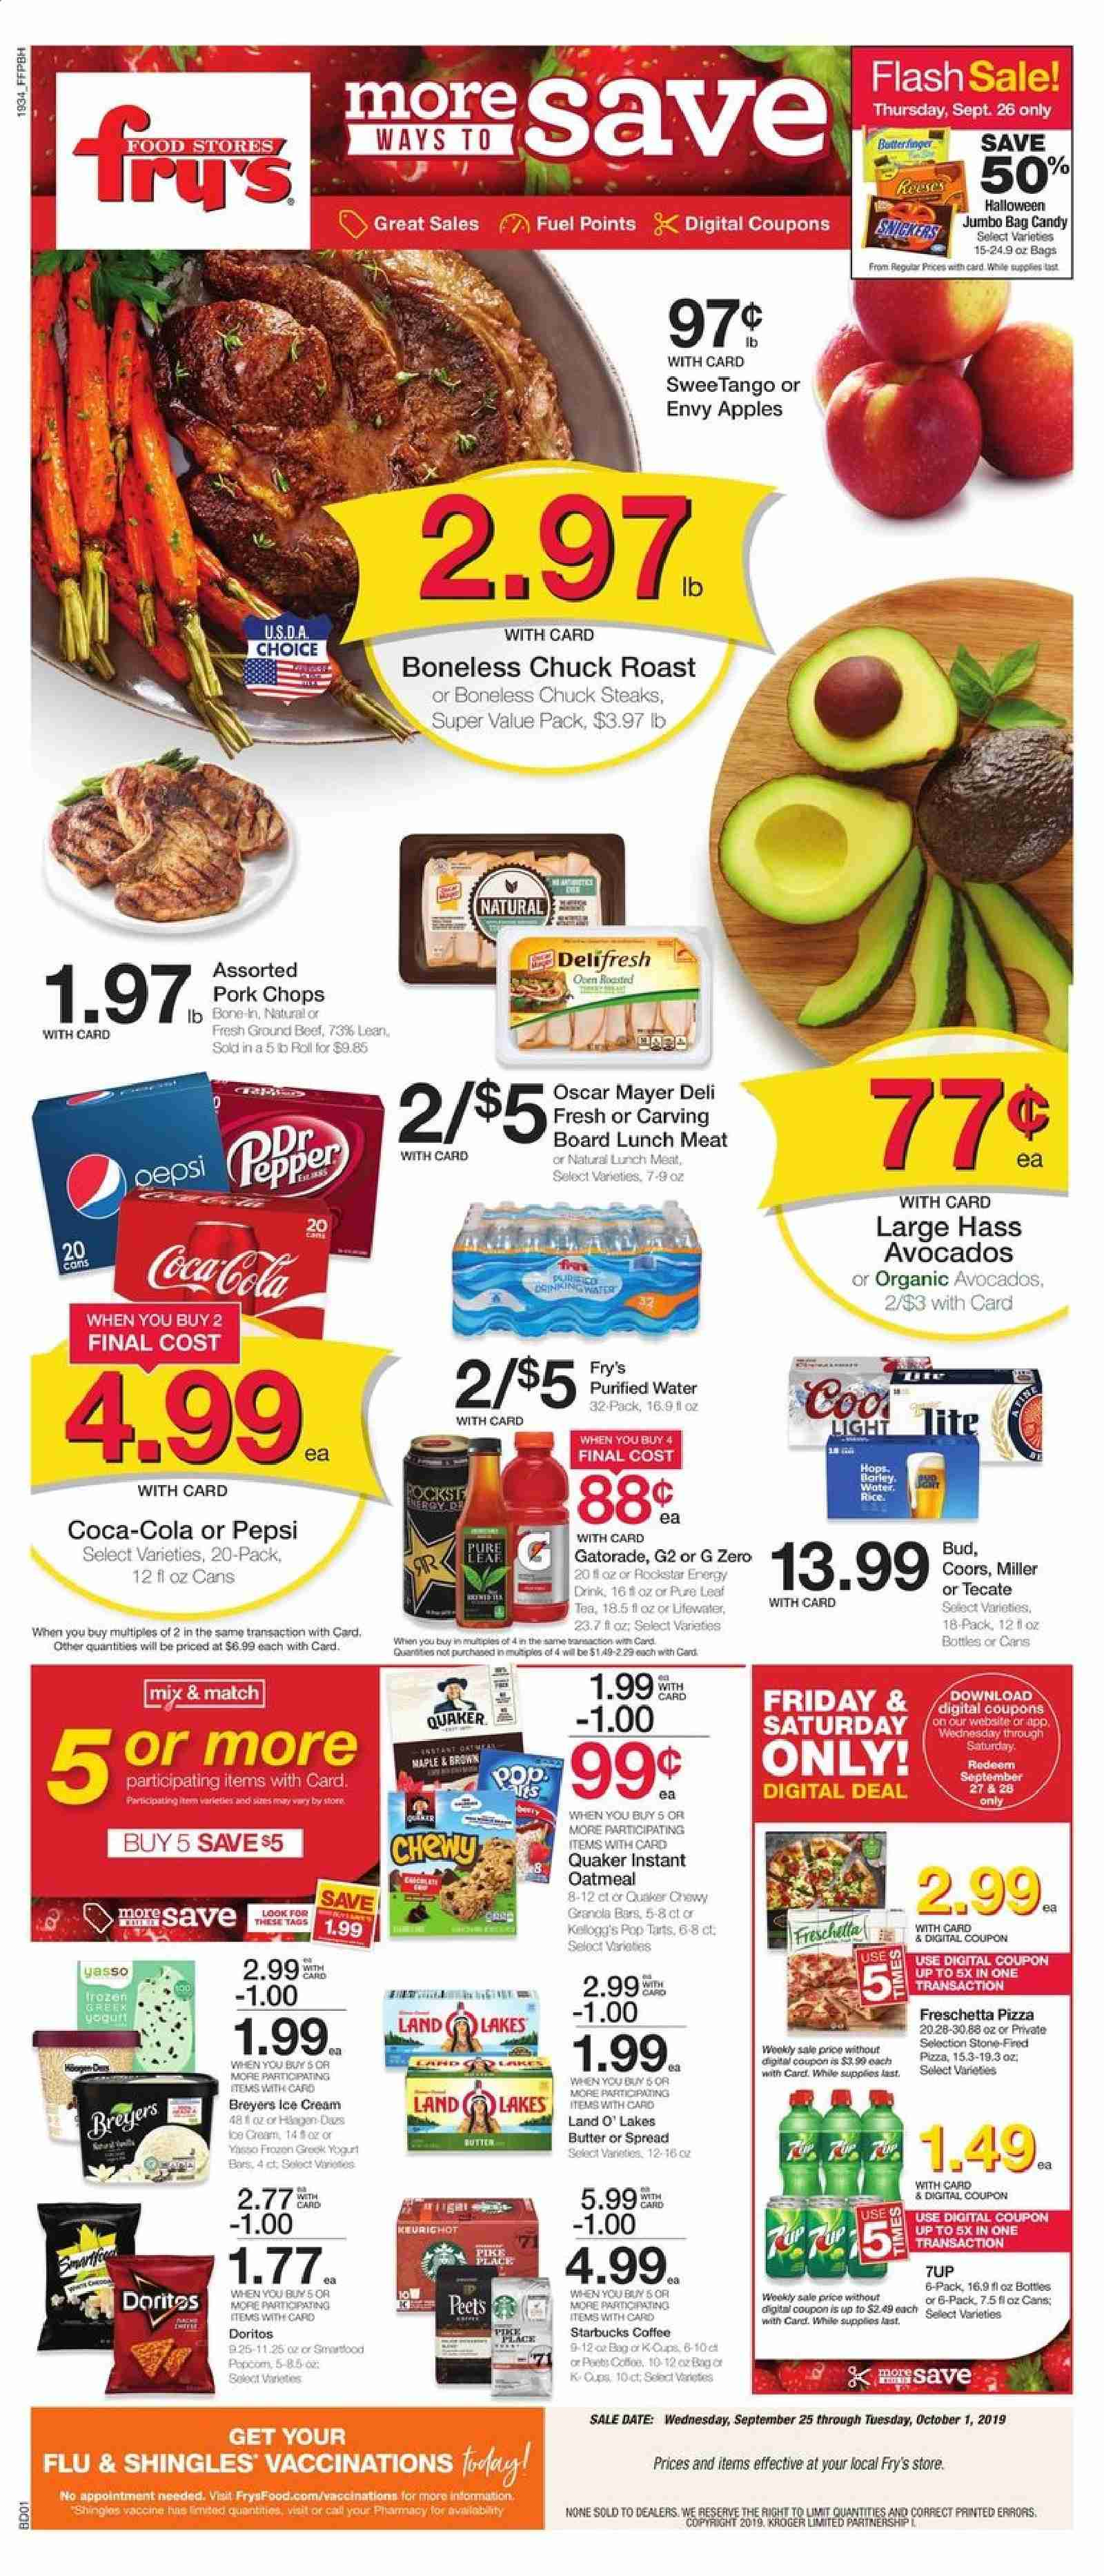 Fry's Flyer - 09.25.2019 - 10.01.2019 - Sales products - Coors, apples, avocado, pike, pizza, lunch meat, butter, candy, Doritos, oatmeal, oats, barley, granola, granola bar, Coca-Cola, Pepsi, energy drink, water, tea, coffee, beef meat, ground beef, pork chops, pork meat, Frozen, Starbucks, cream. Page 1.